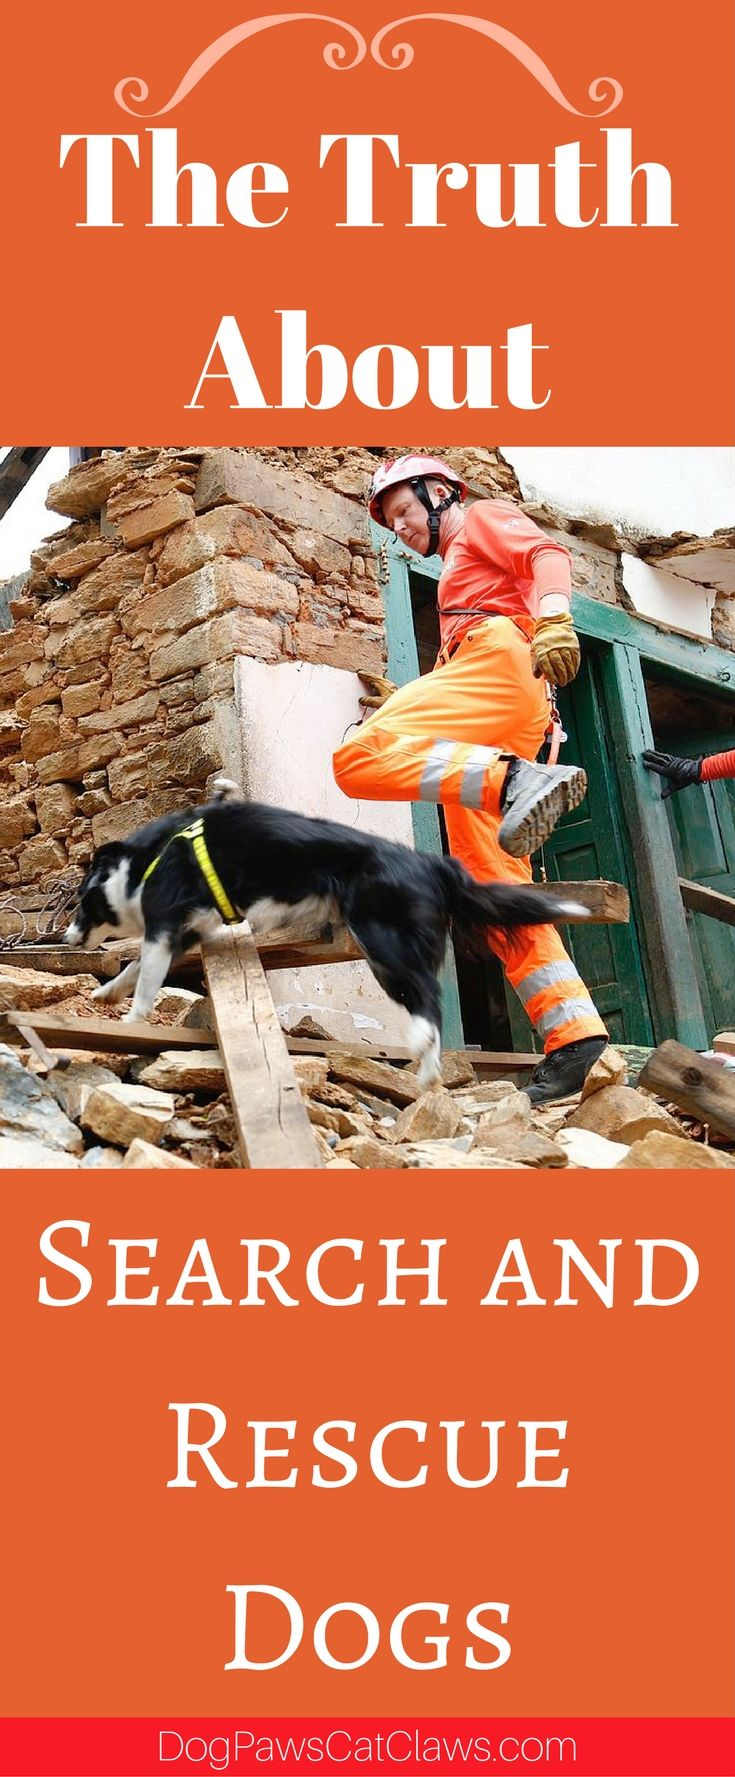 Search and Rescue DogsIn medieval times, the famed St. Bernard was bred and trained by monks in the Alps to rescue avalanche victims and...